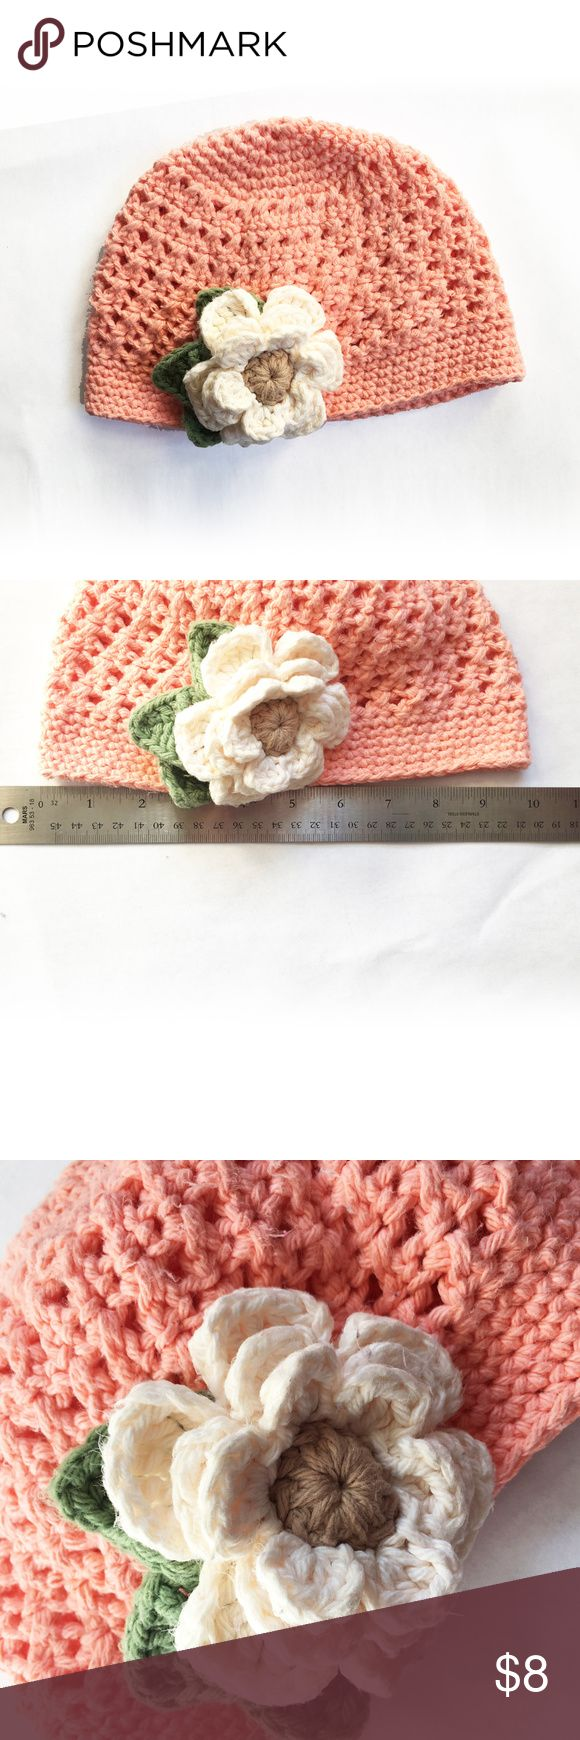 """Crochet Girl Hat with Flower This hat is crocheted using a unique cross stitch that creates a mesh fabric that is perfect for warmer and cooler months. It has been made with soft 100% cotton yarn so that it won't be that """"itchy hat"""" that she won't wear. This is a used beanie in good condition. Measures about 10 across when flat. Peach color hat with white flower and green leaves. Accessories Hats"""